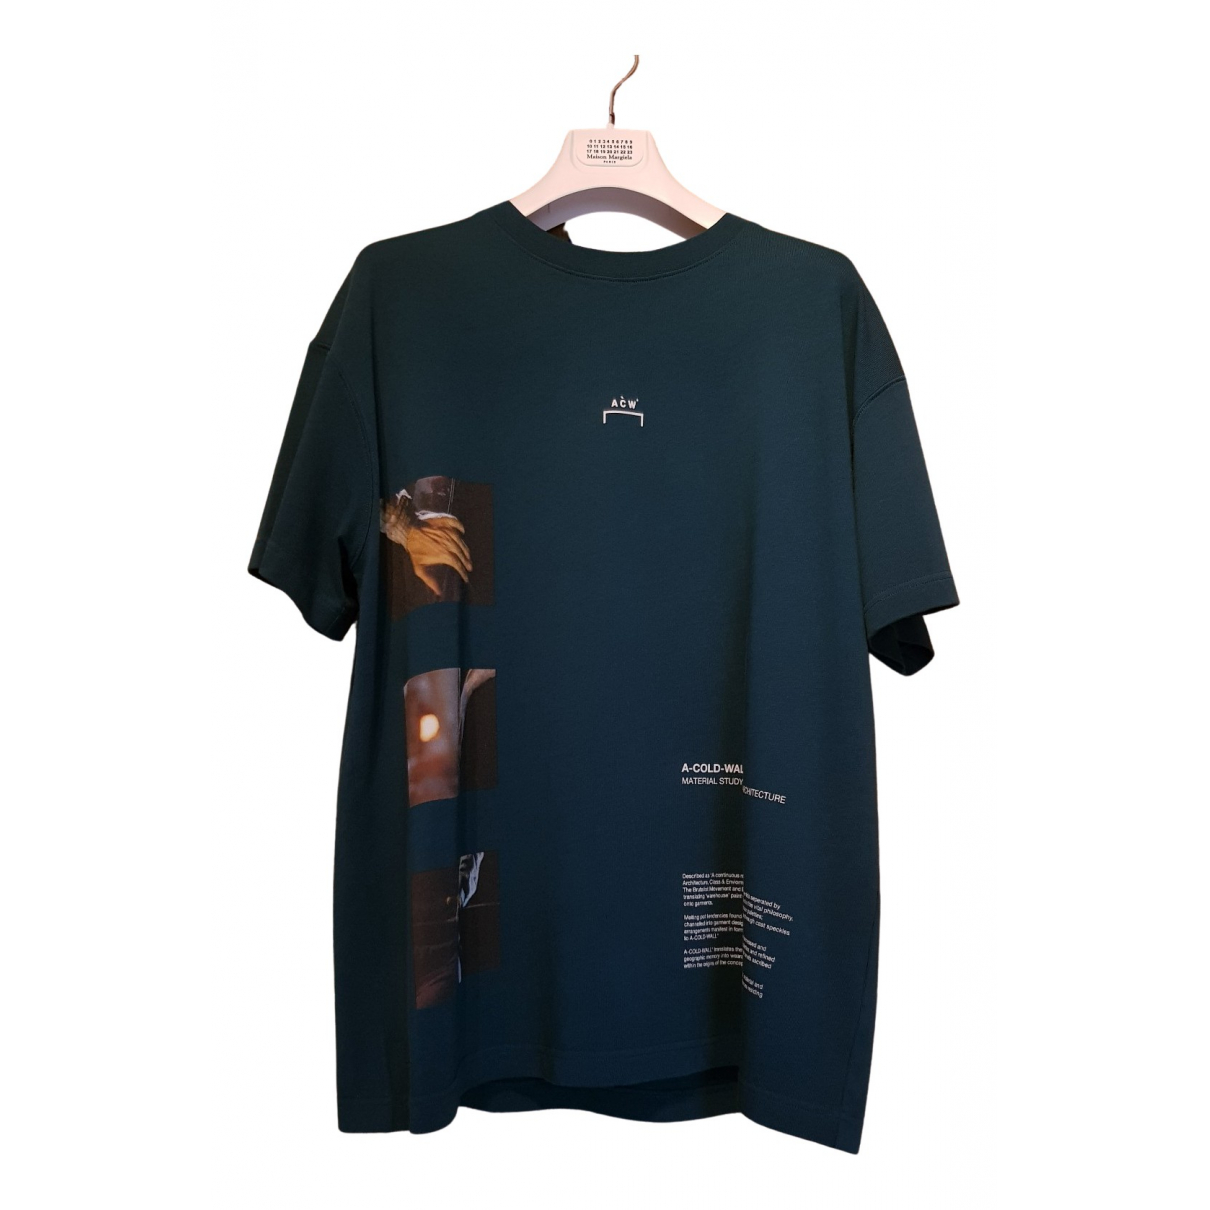 Camiseta A-cold-wall